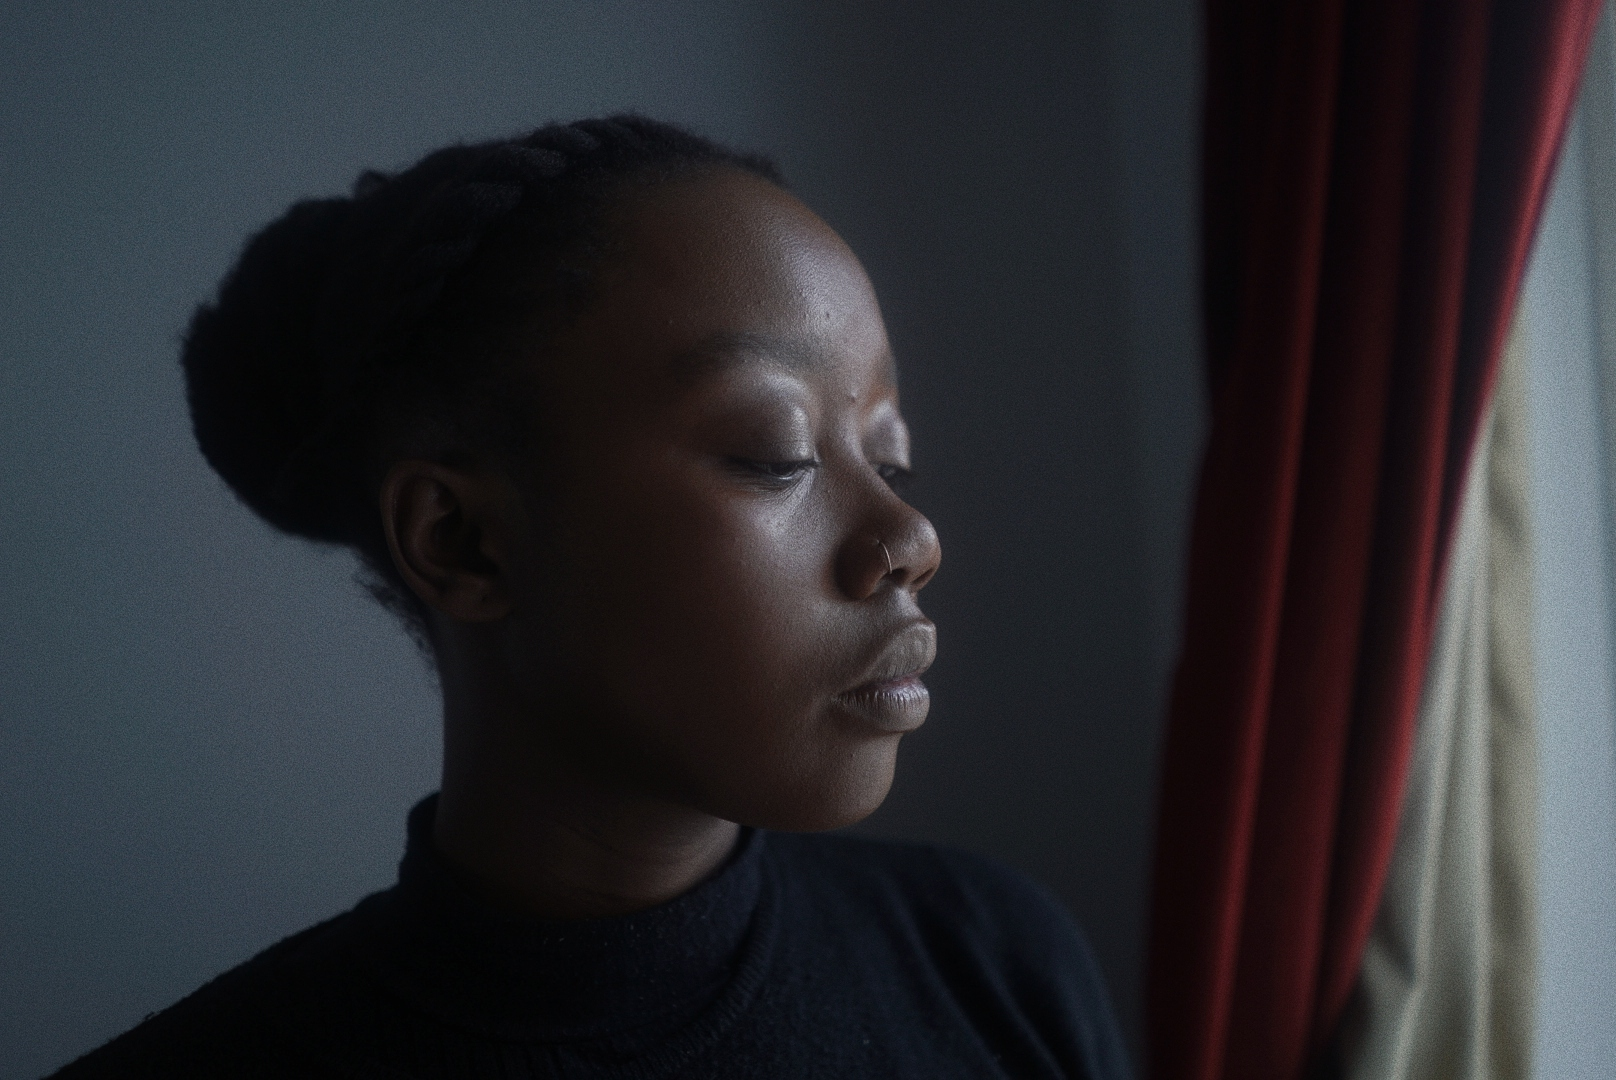 A picture of Jameisha Prescod. A black person wearing a black turtle neck in a greyish room staring out the window.